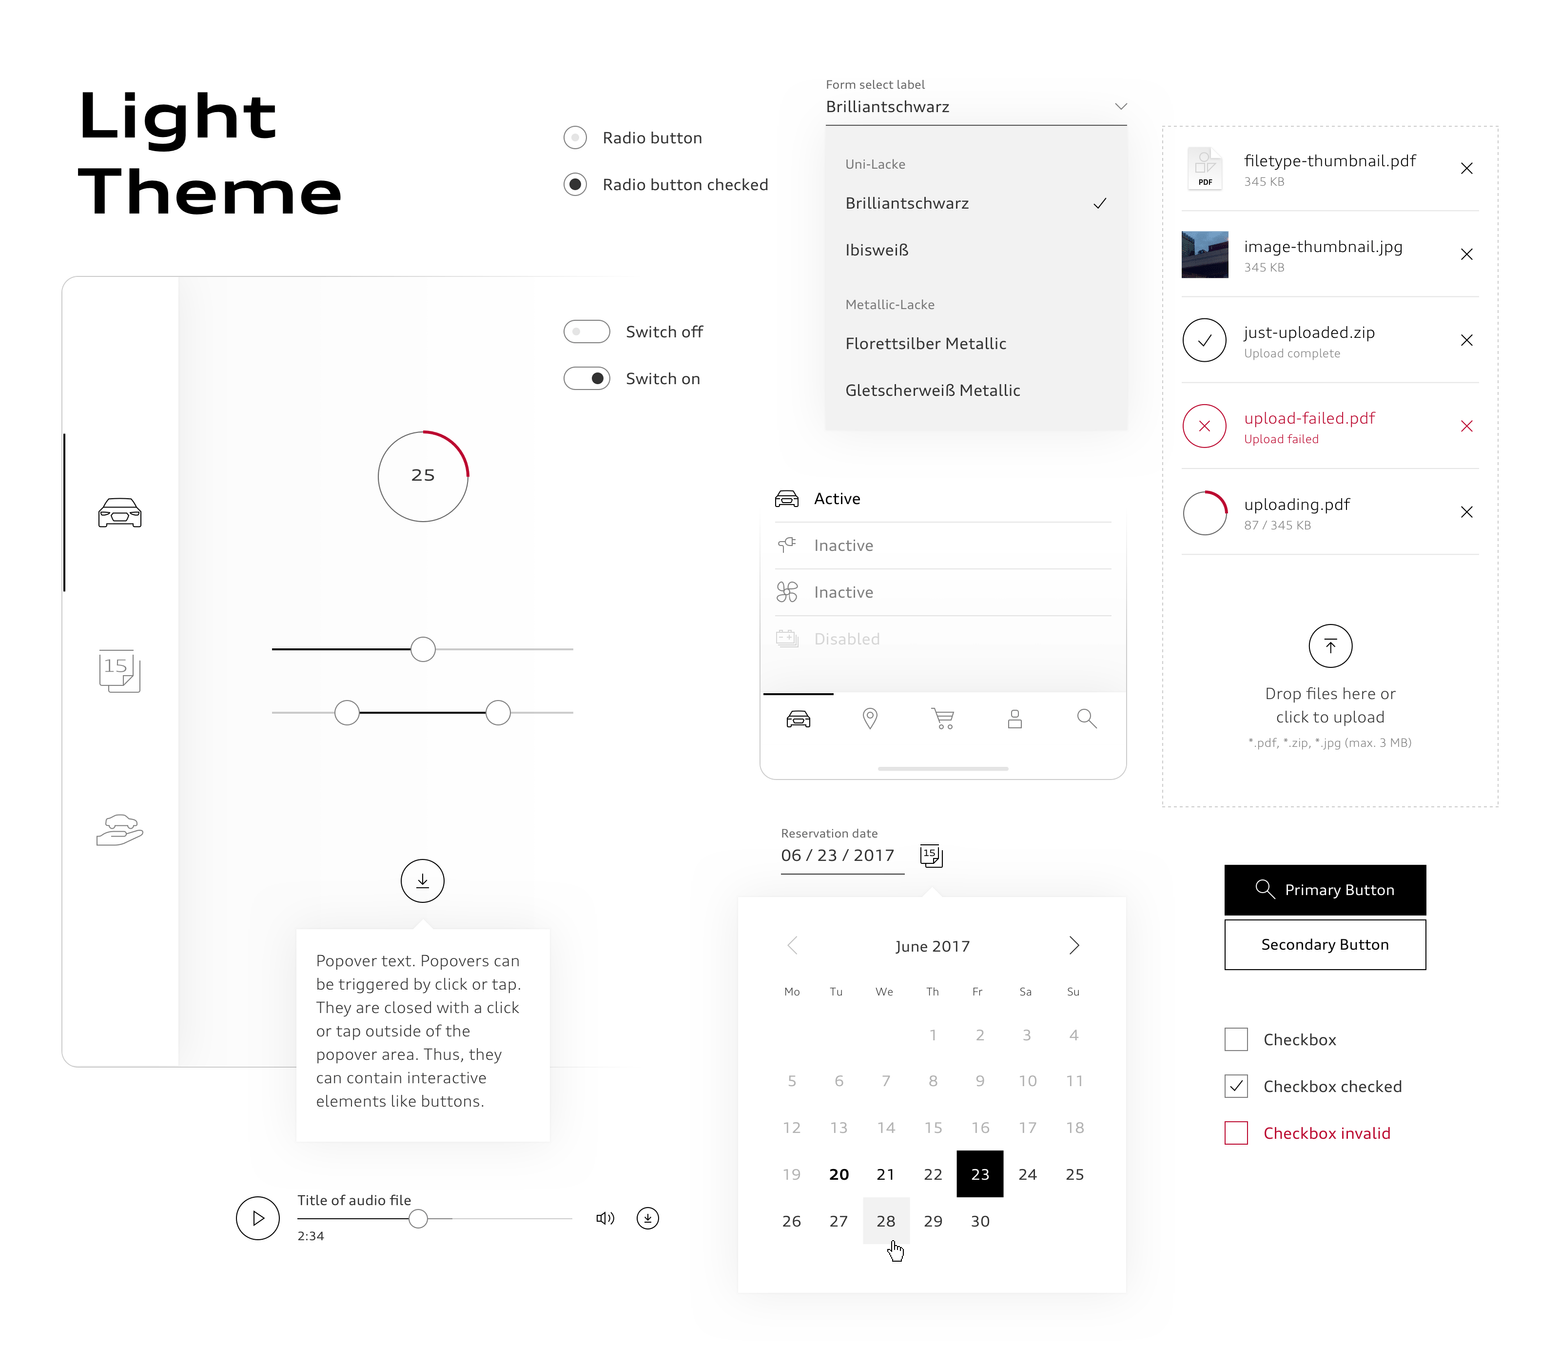 Audi interface components in light theme.